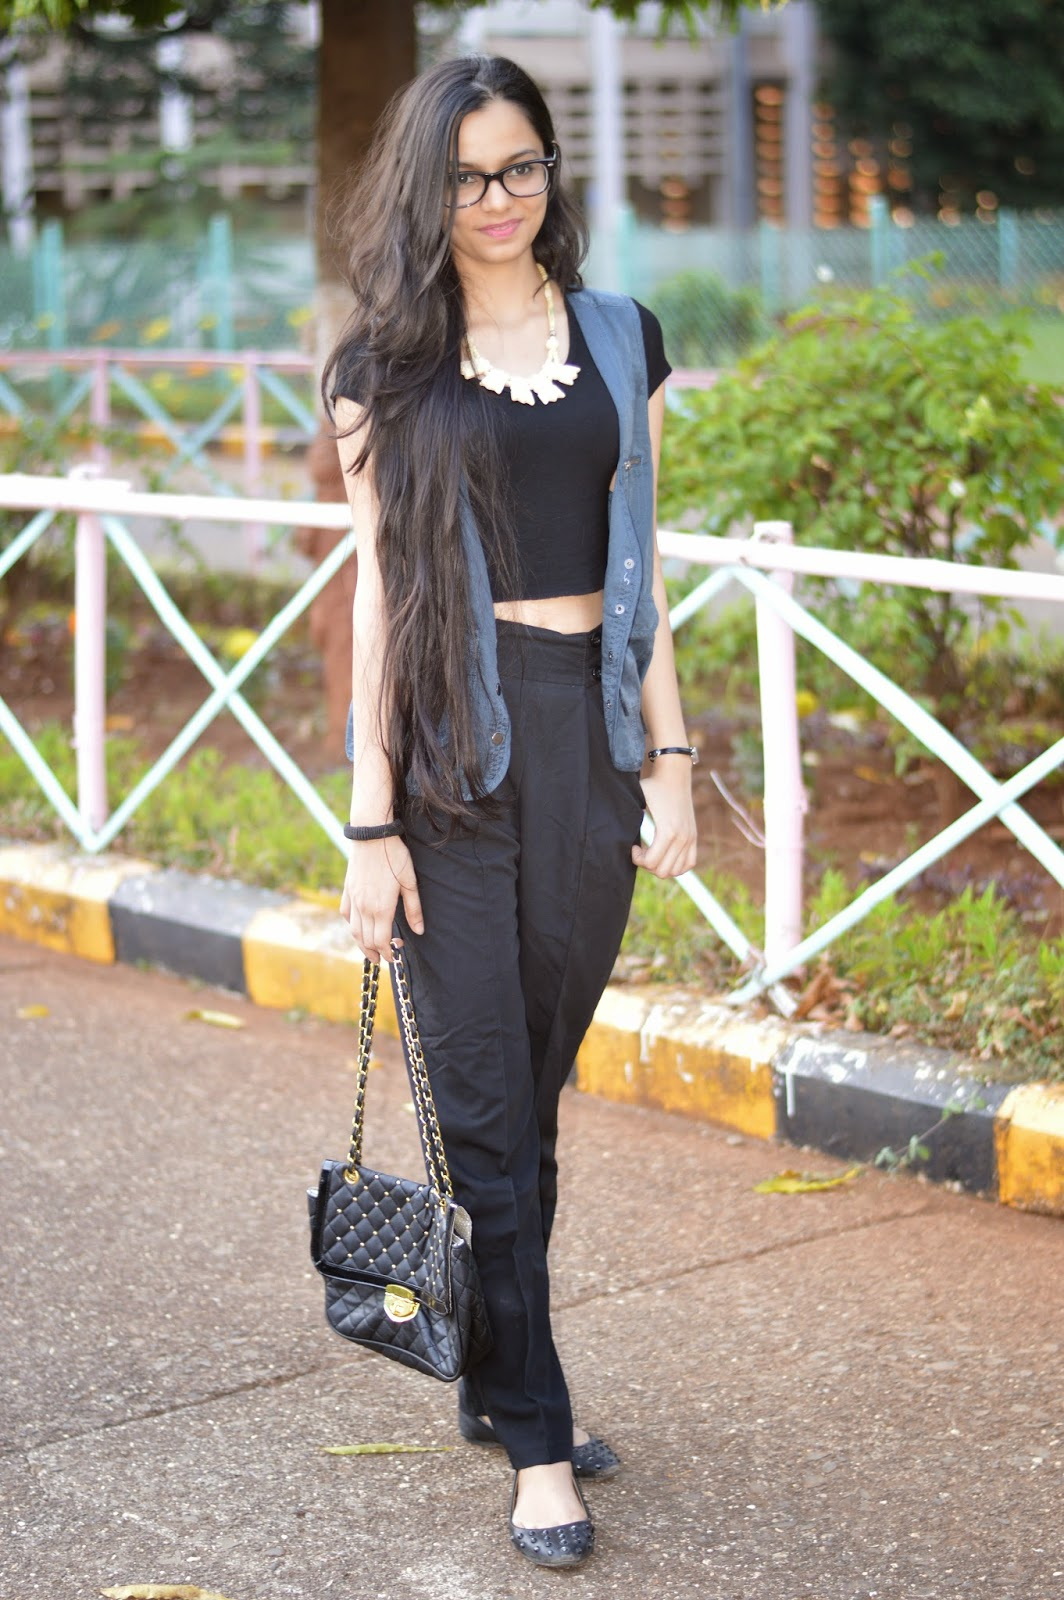 how to wear high waisted pants, how to wear crop tops, how to wear a vest, simple black croptop, how to dress for casual working days, mumbai fashion blogger, mumbai streetstyle, geek chic